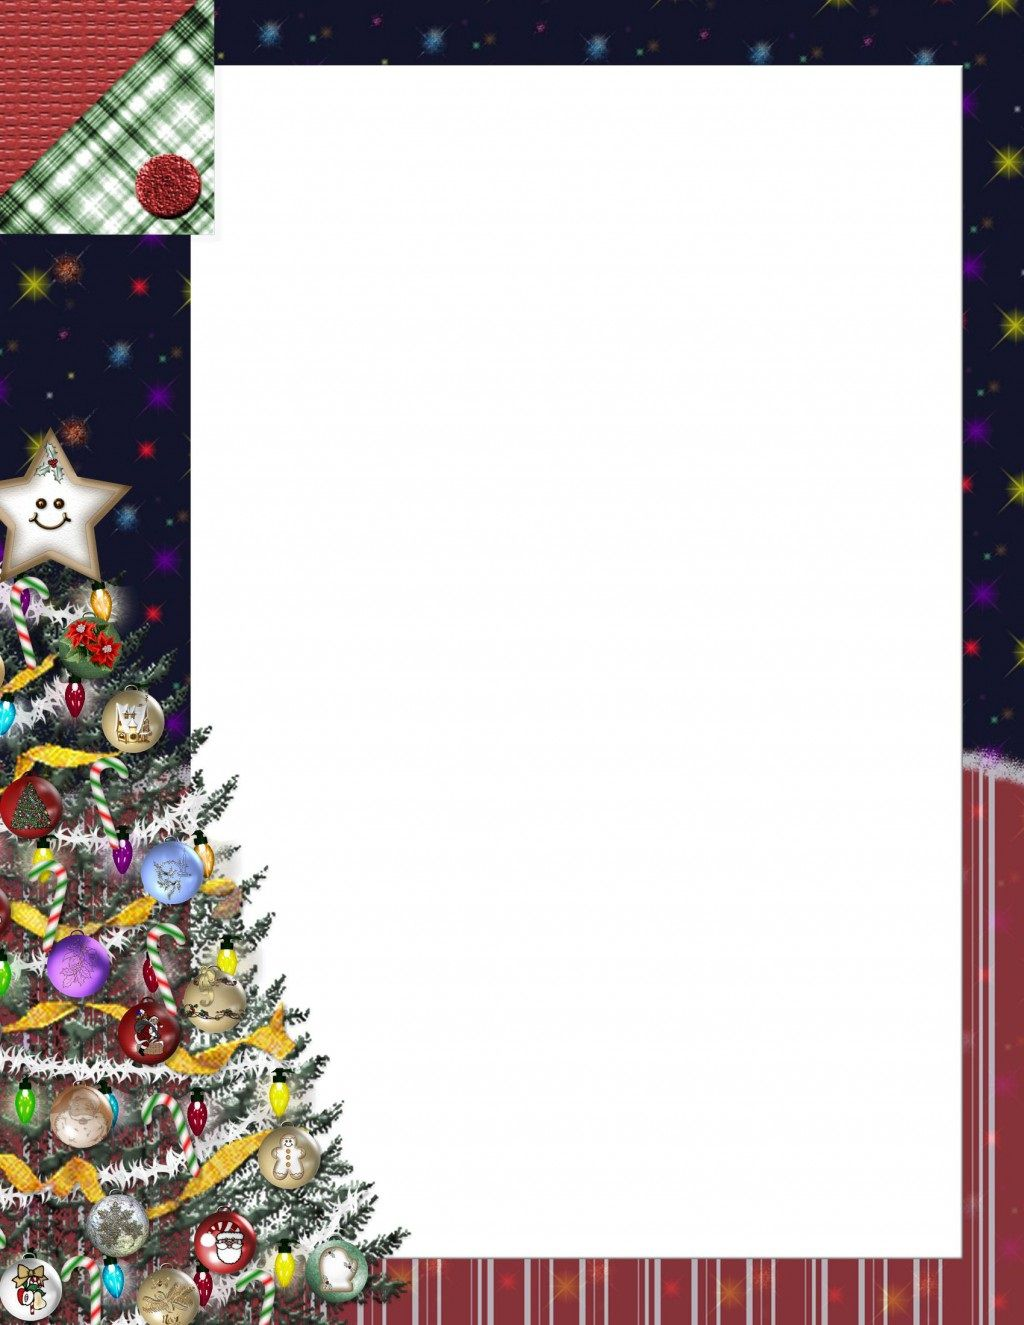 003 Unforgettable Free Christian Christma Stationery Template For Word Image Full